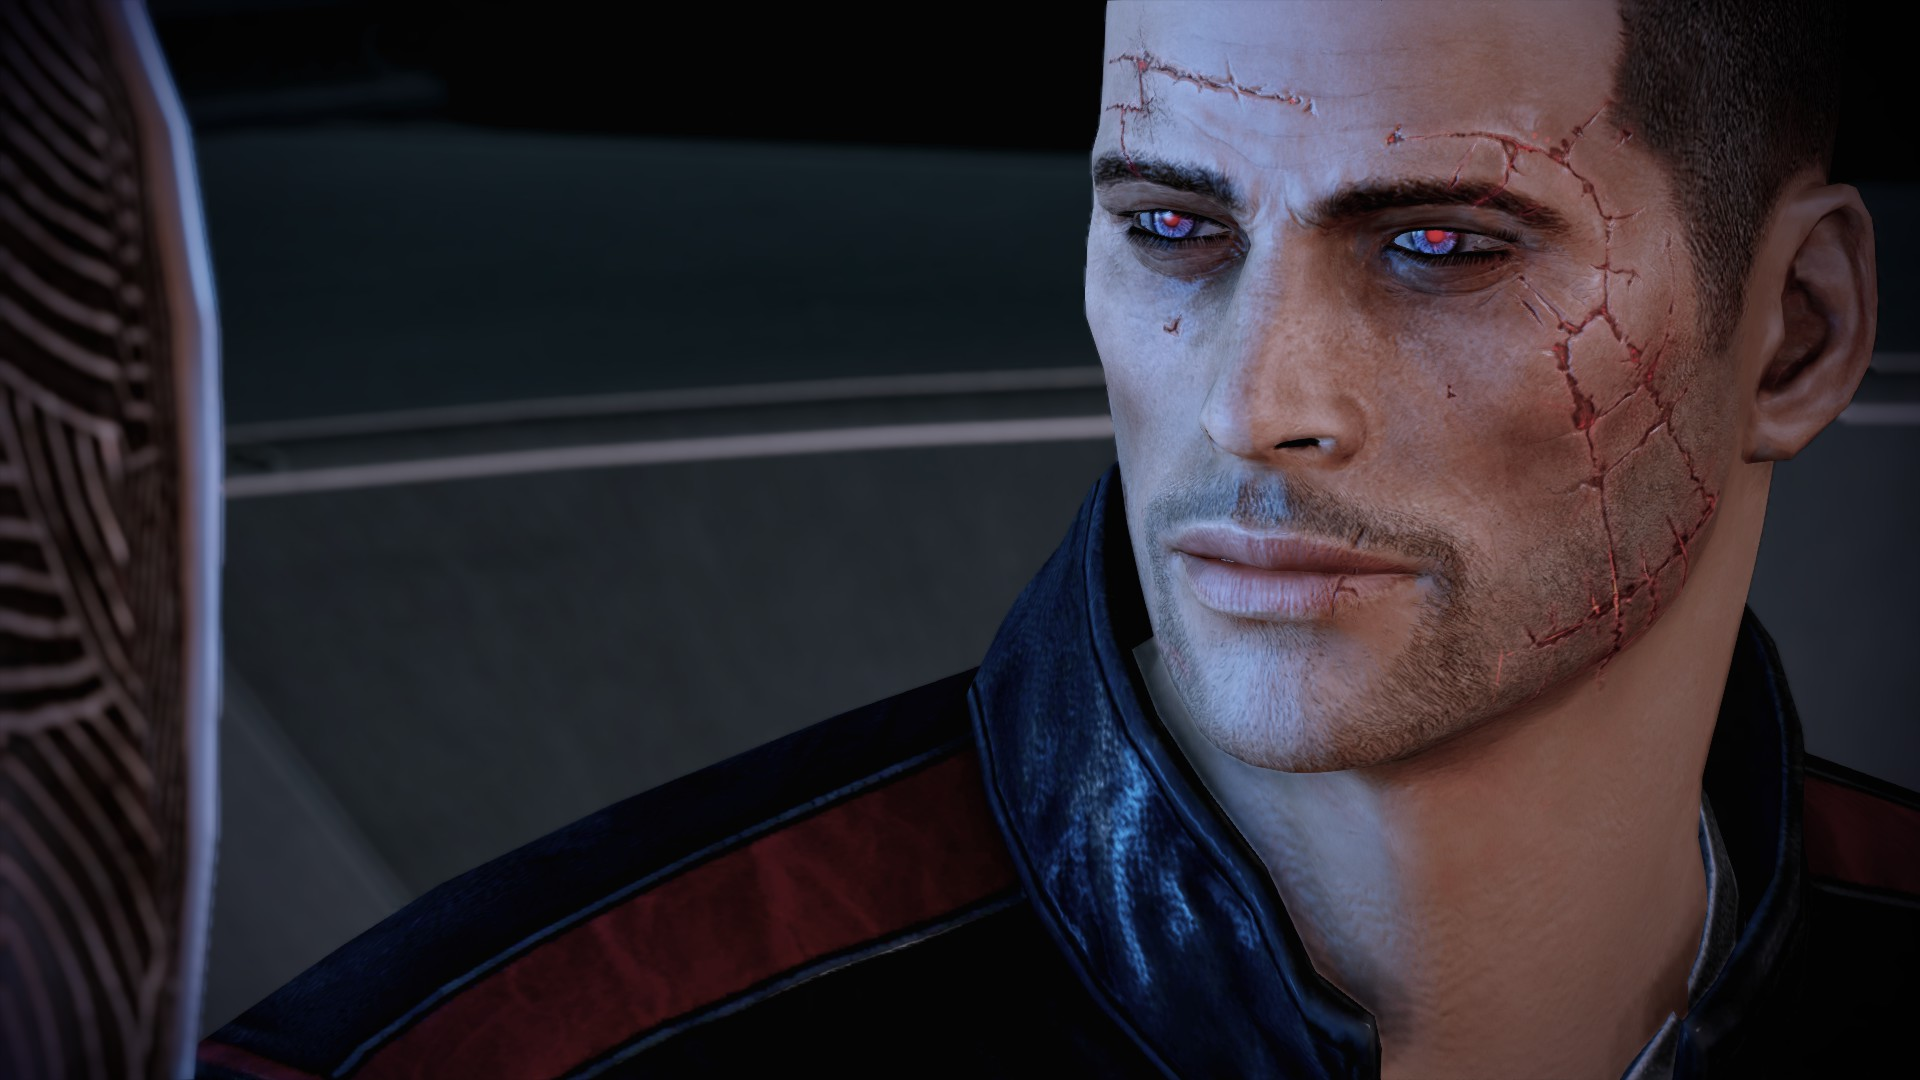 Mass Effect™ Legendary Edition - Game Information to Modding and Configuration - Let's make Mass Effect: Legendary Edition great - 33677D0